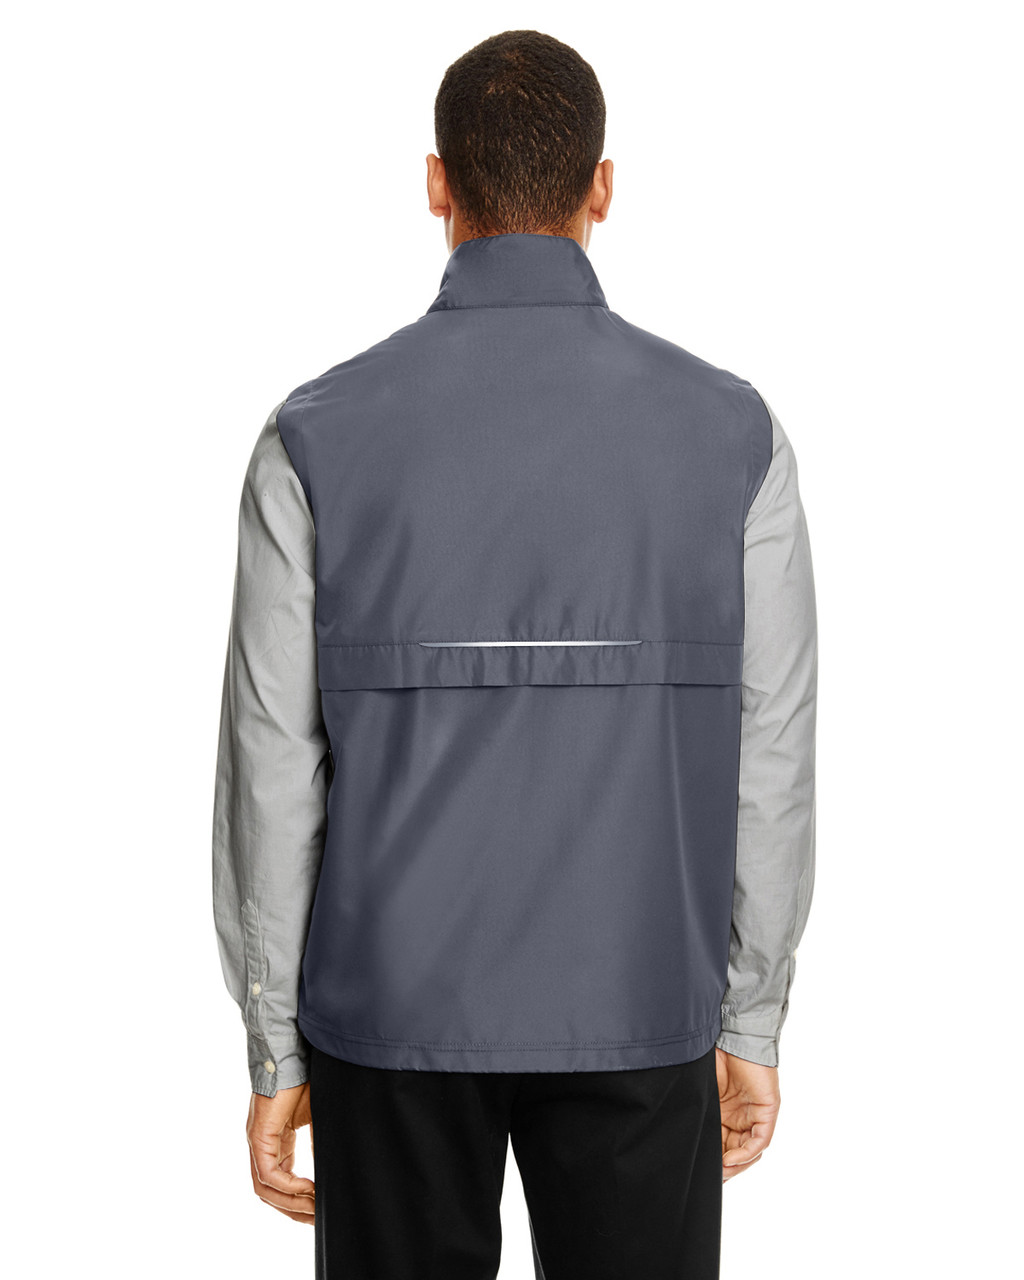 Carbon - CE703 Ash City - Core 365 Men's Techno Lite Unlined Vest | Blankclothing.ca